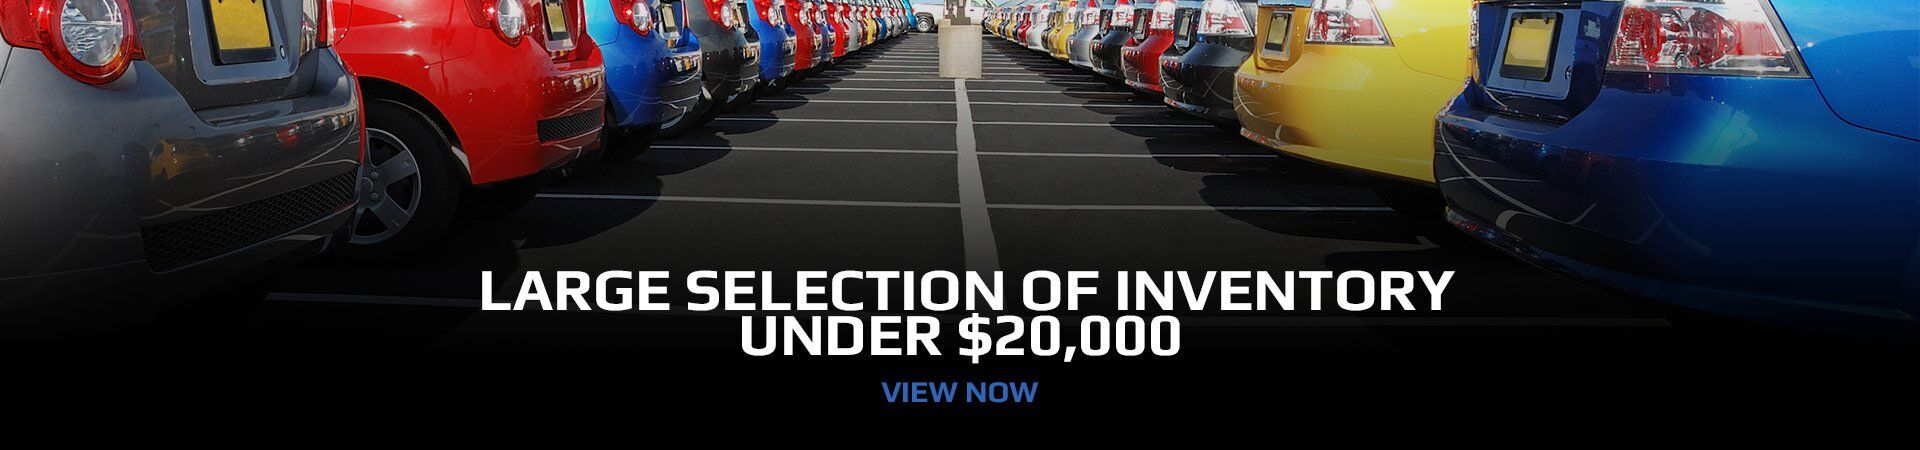 Used Vehicles under $20,000 at Deskins Motors Campbellsville